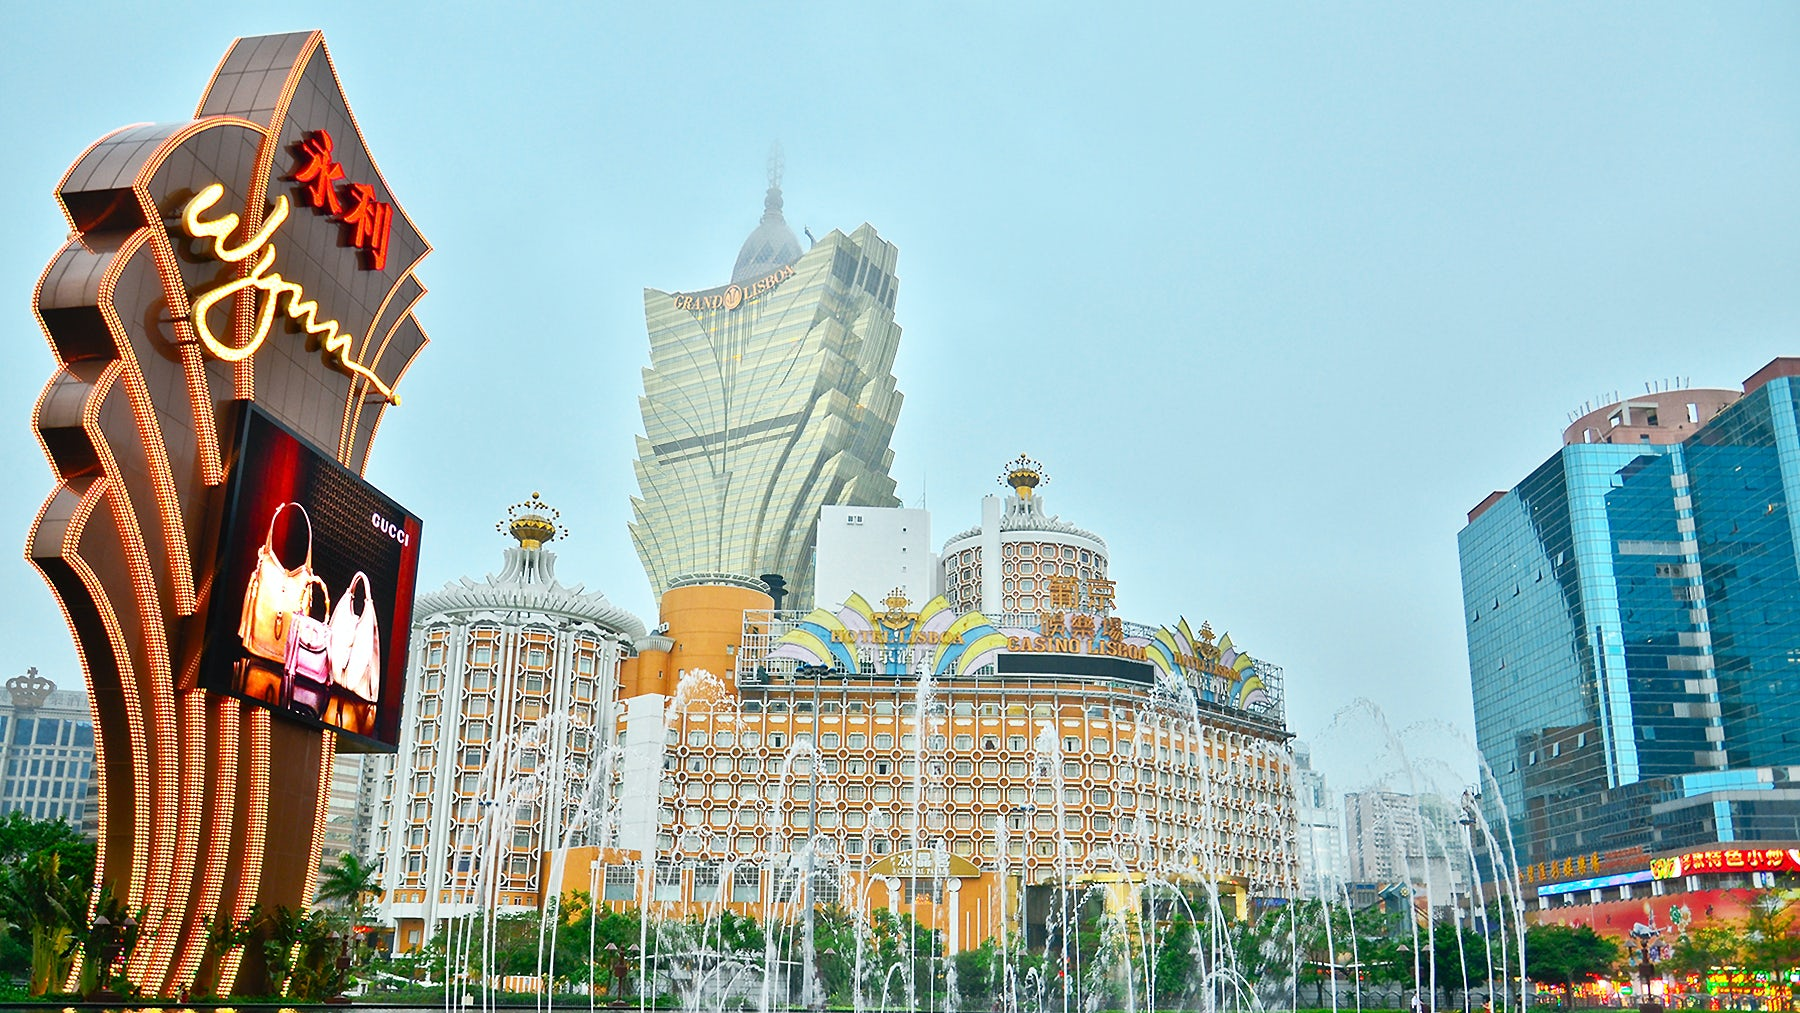 The Wynn Macau casino resort in Macau, China | Source: Shutterstock